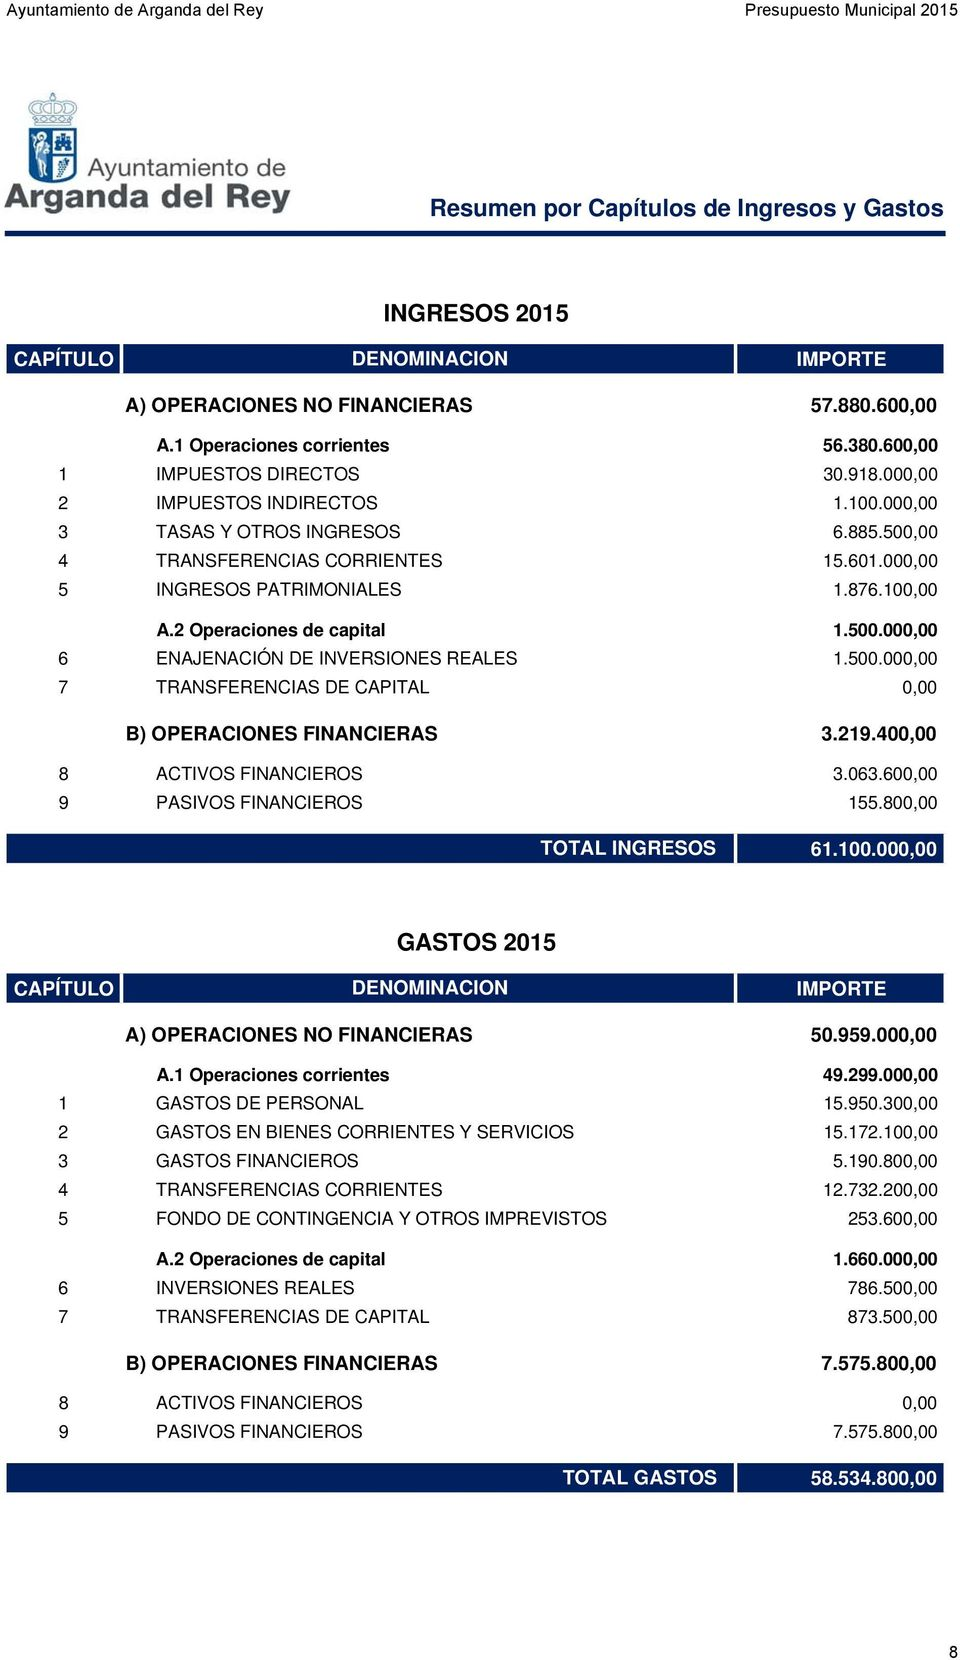 500.000,00 7 TRANSFERENCIAS DE CAPITAL 0,00 B) OPERACIONES FINANCIERAS 3.219.400,00 8 ACTIVOS FINANCIEROS 3.063.600,00 9 PASIVOS FINANCIEROS 155.800,00 TOTAL INGRESOS 61.100.